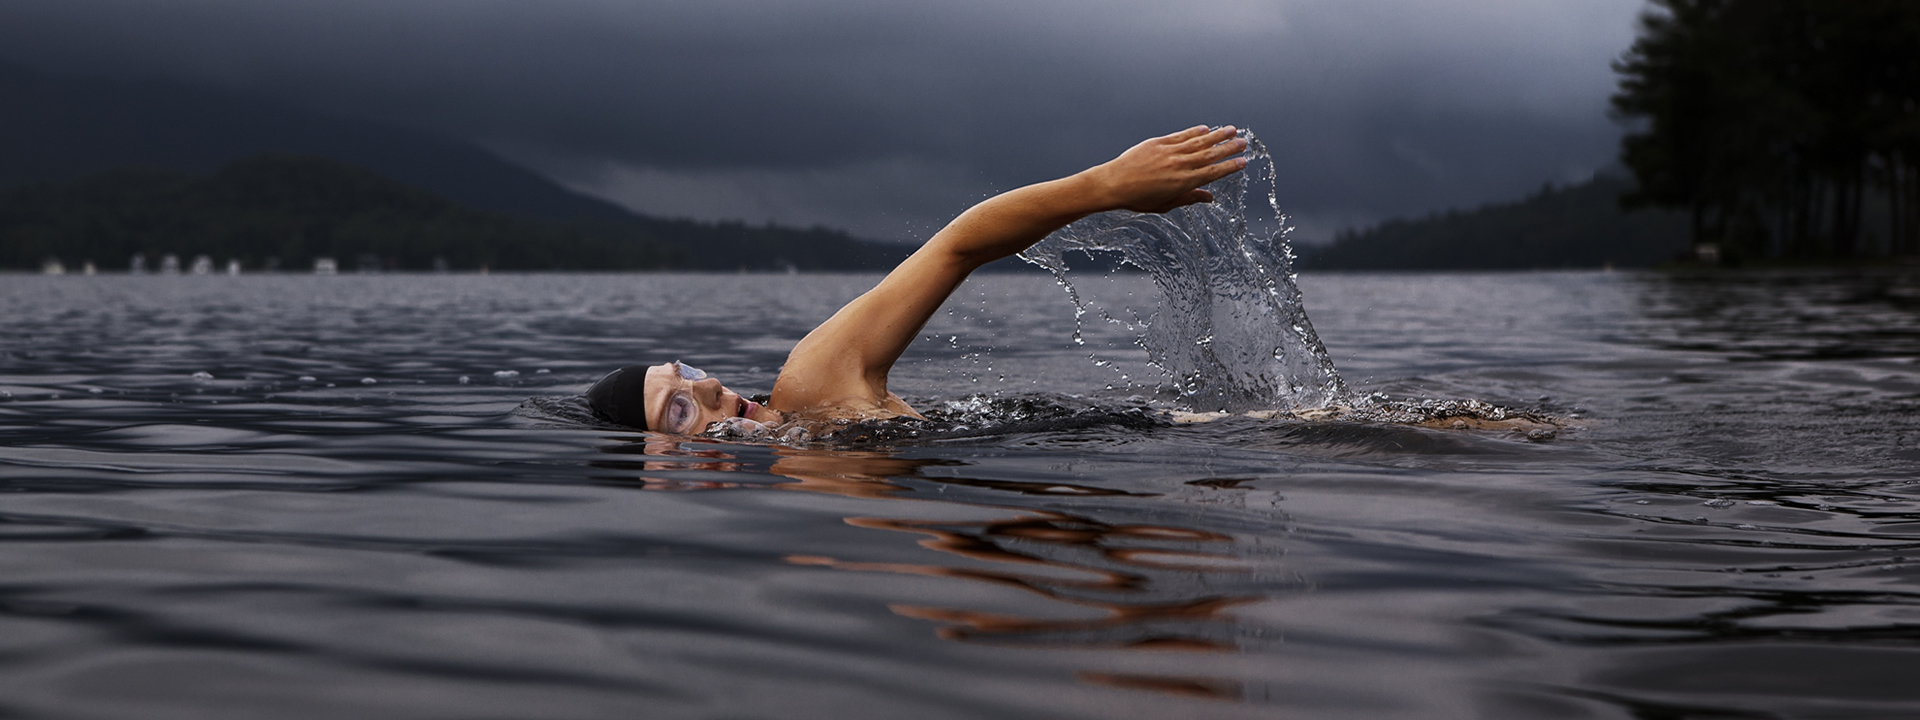 swimmer in lake water